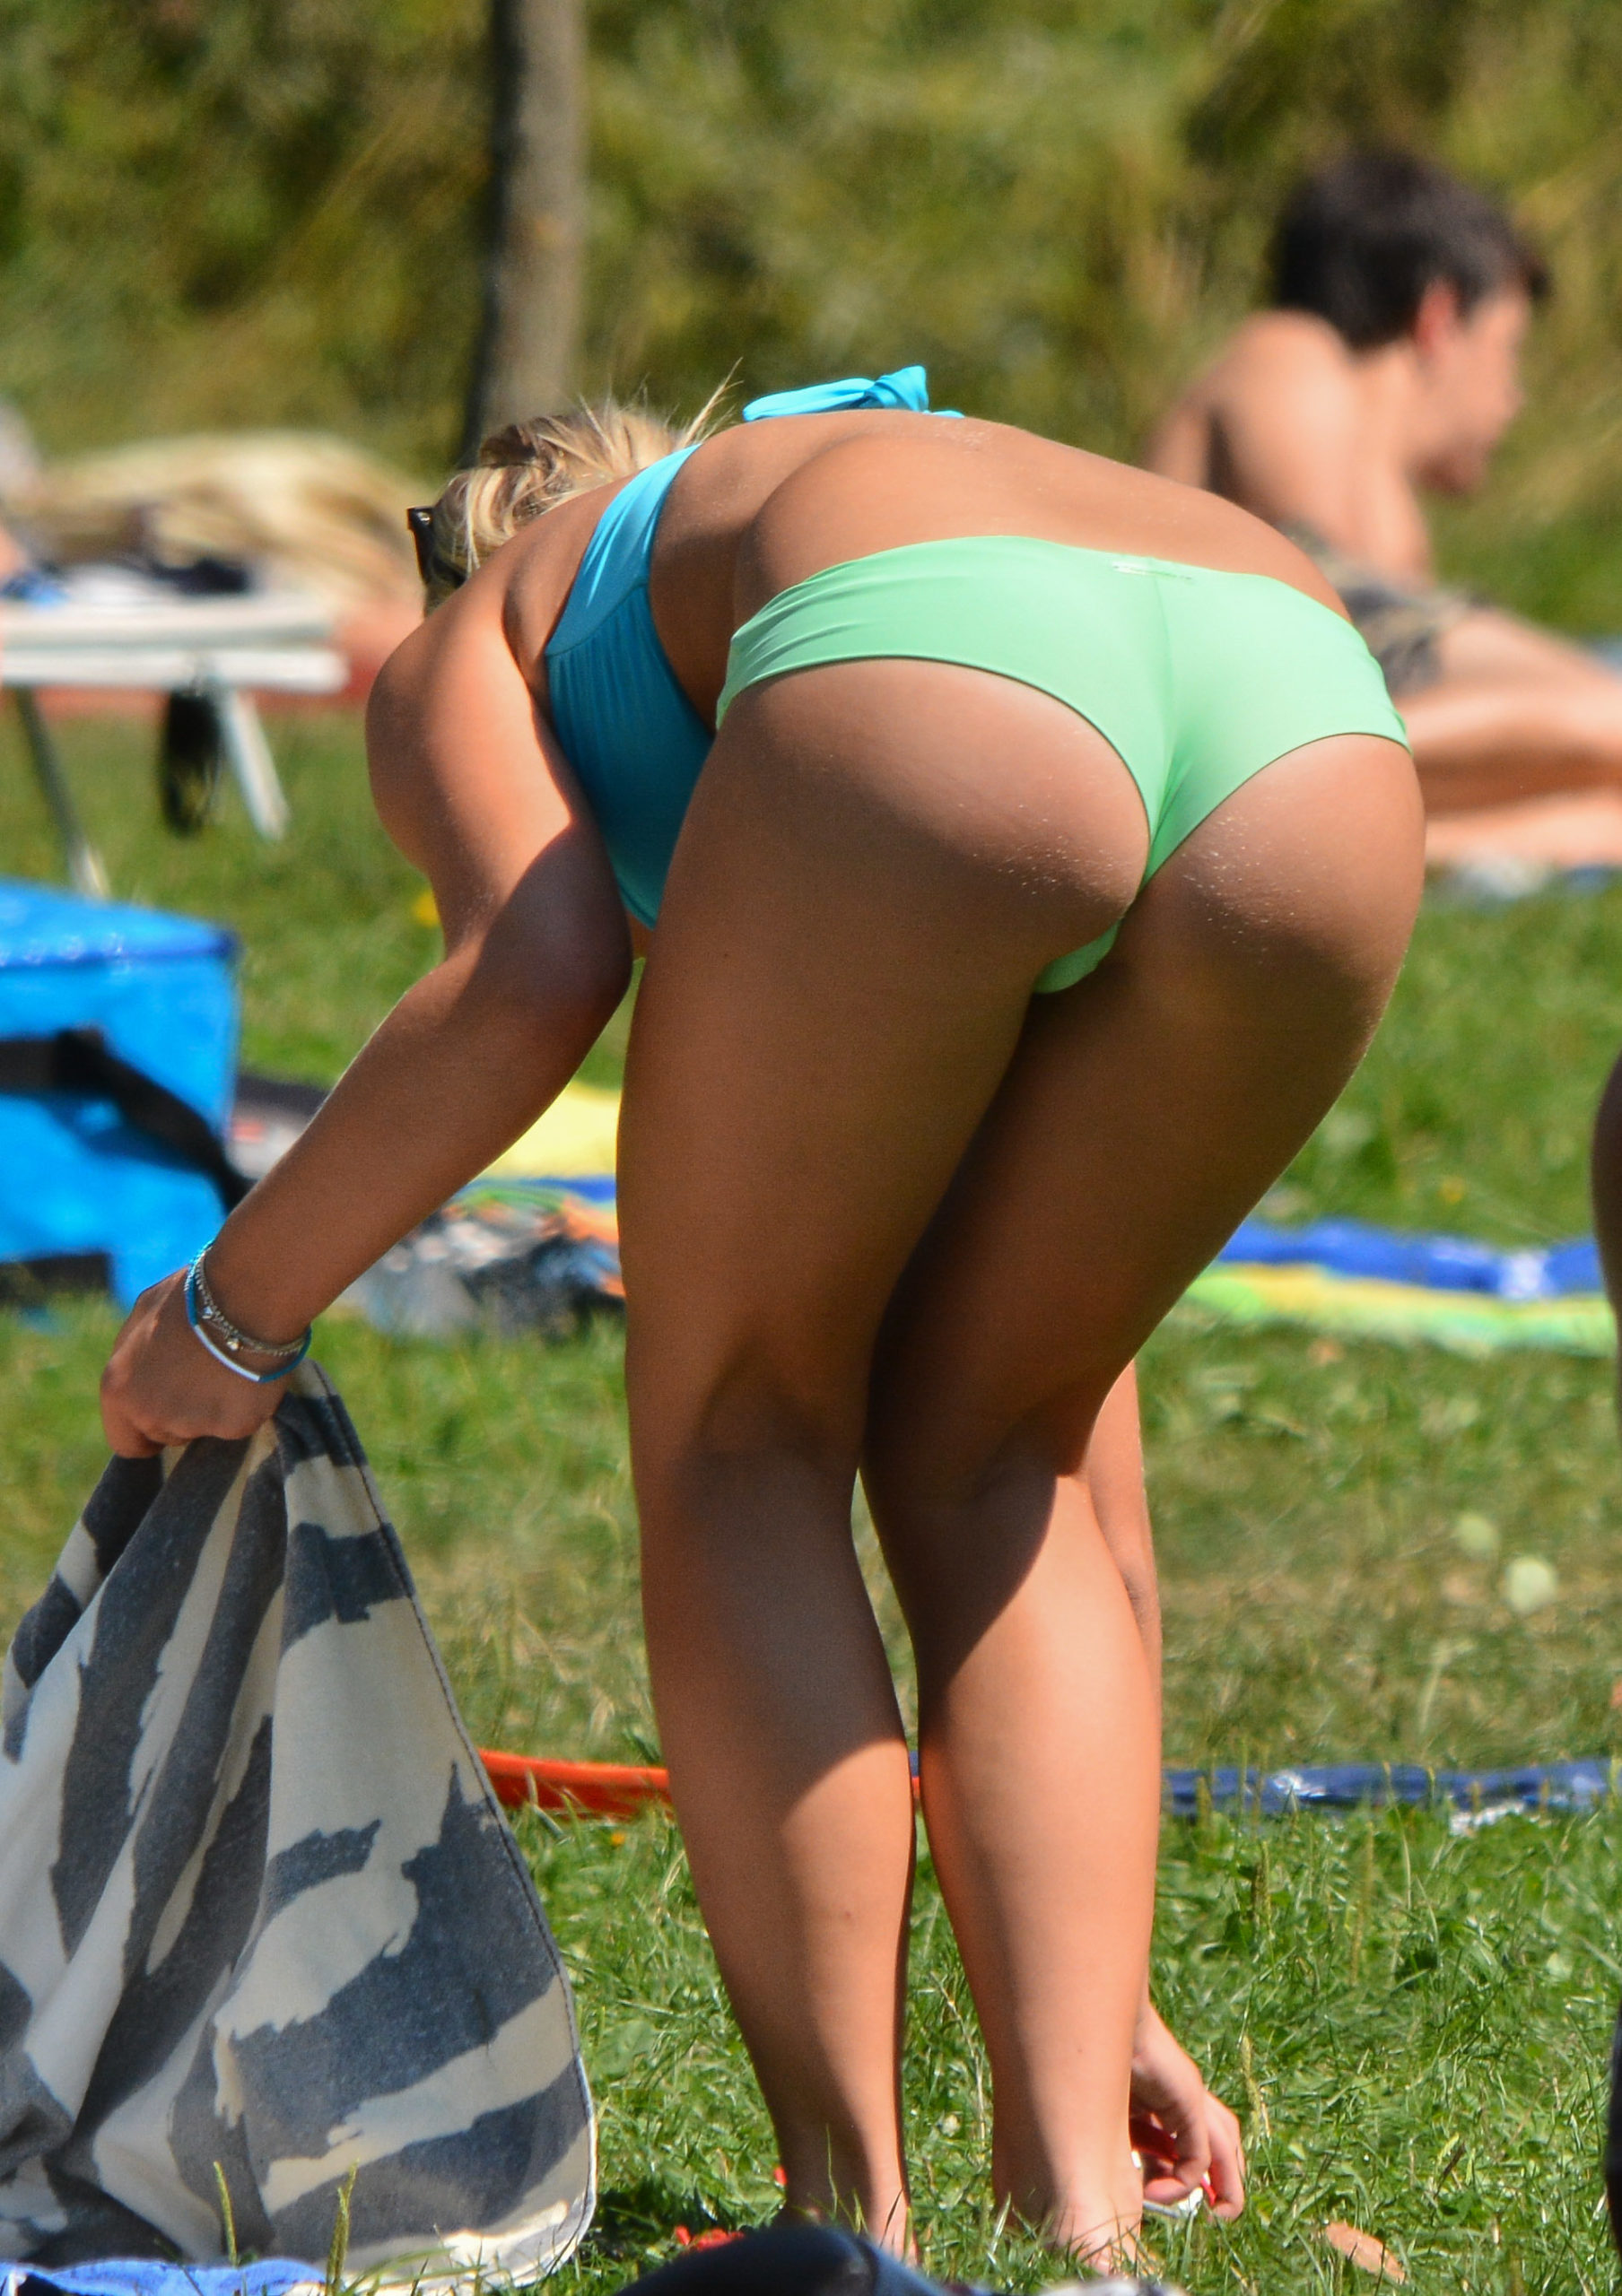 bikini babe with perfect ass